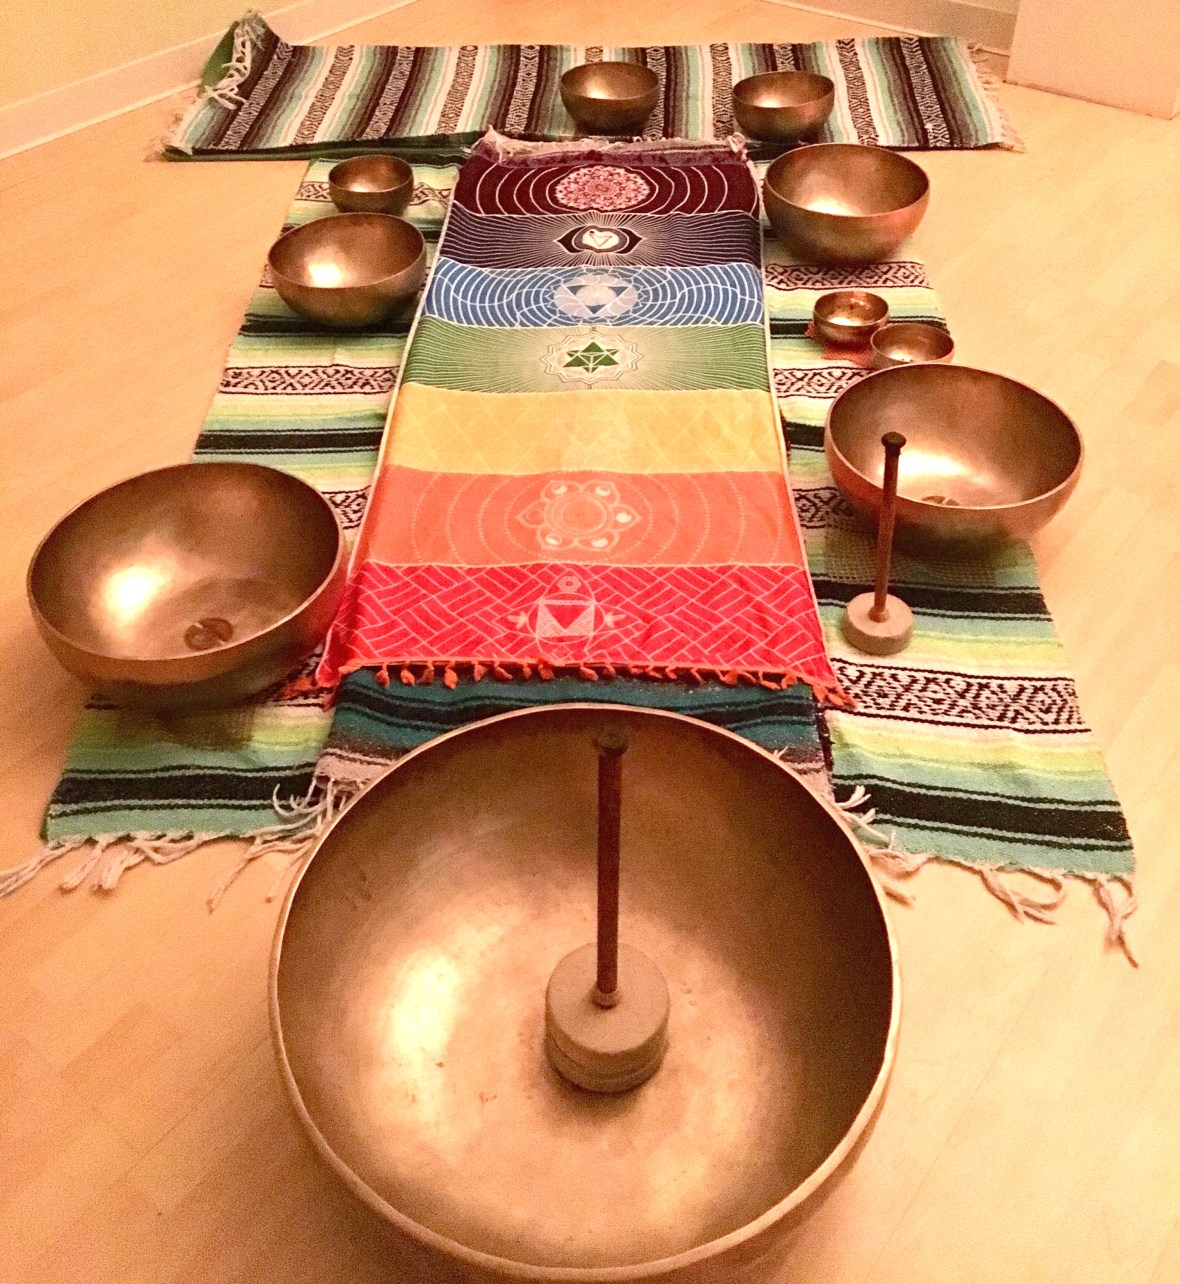 Healing bowls on yoga blankets with a colorful chakra blanket on top.